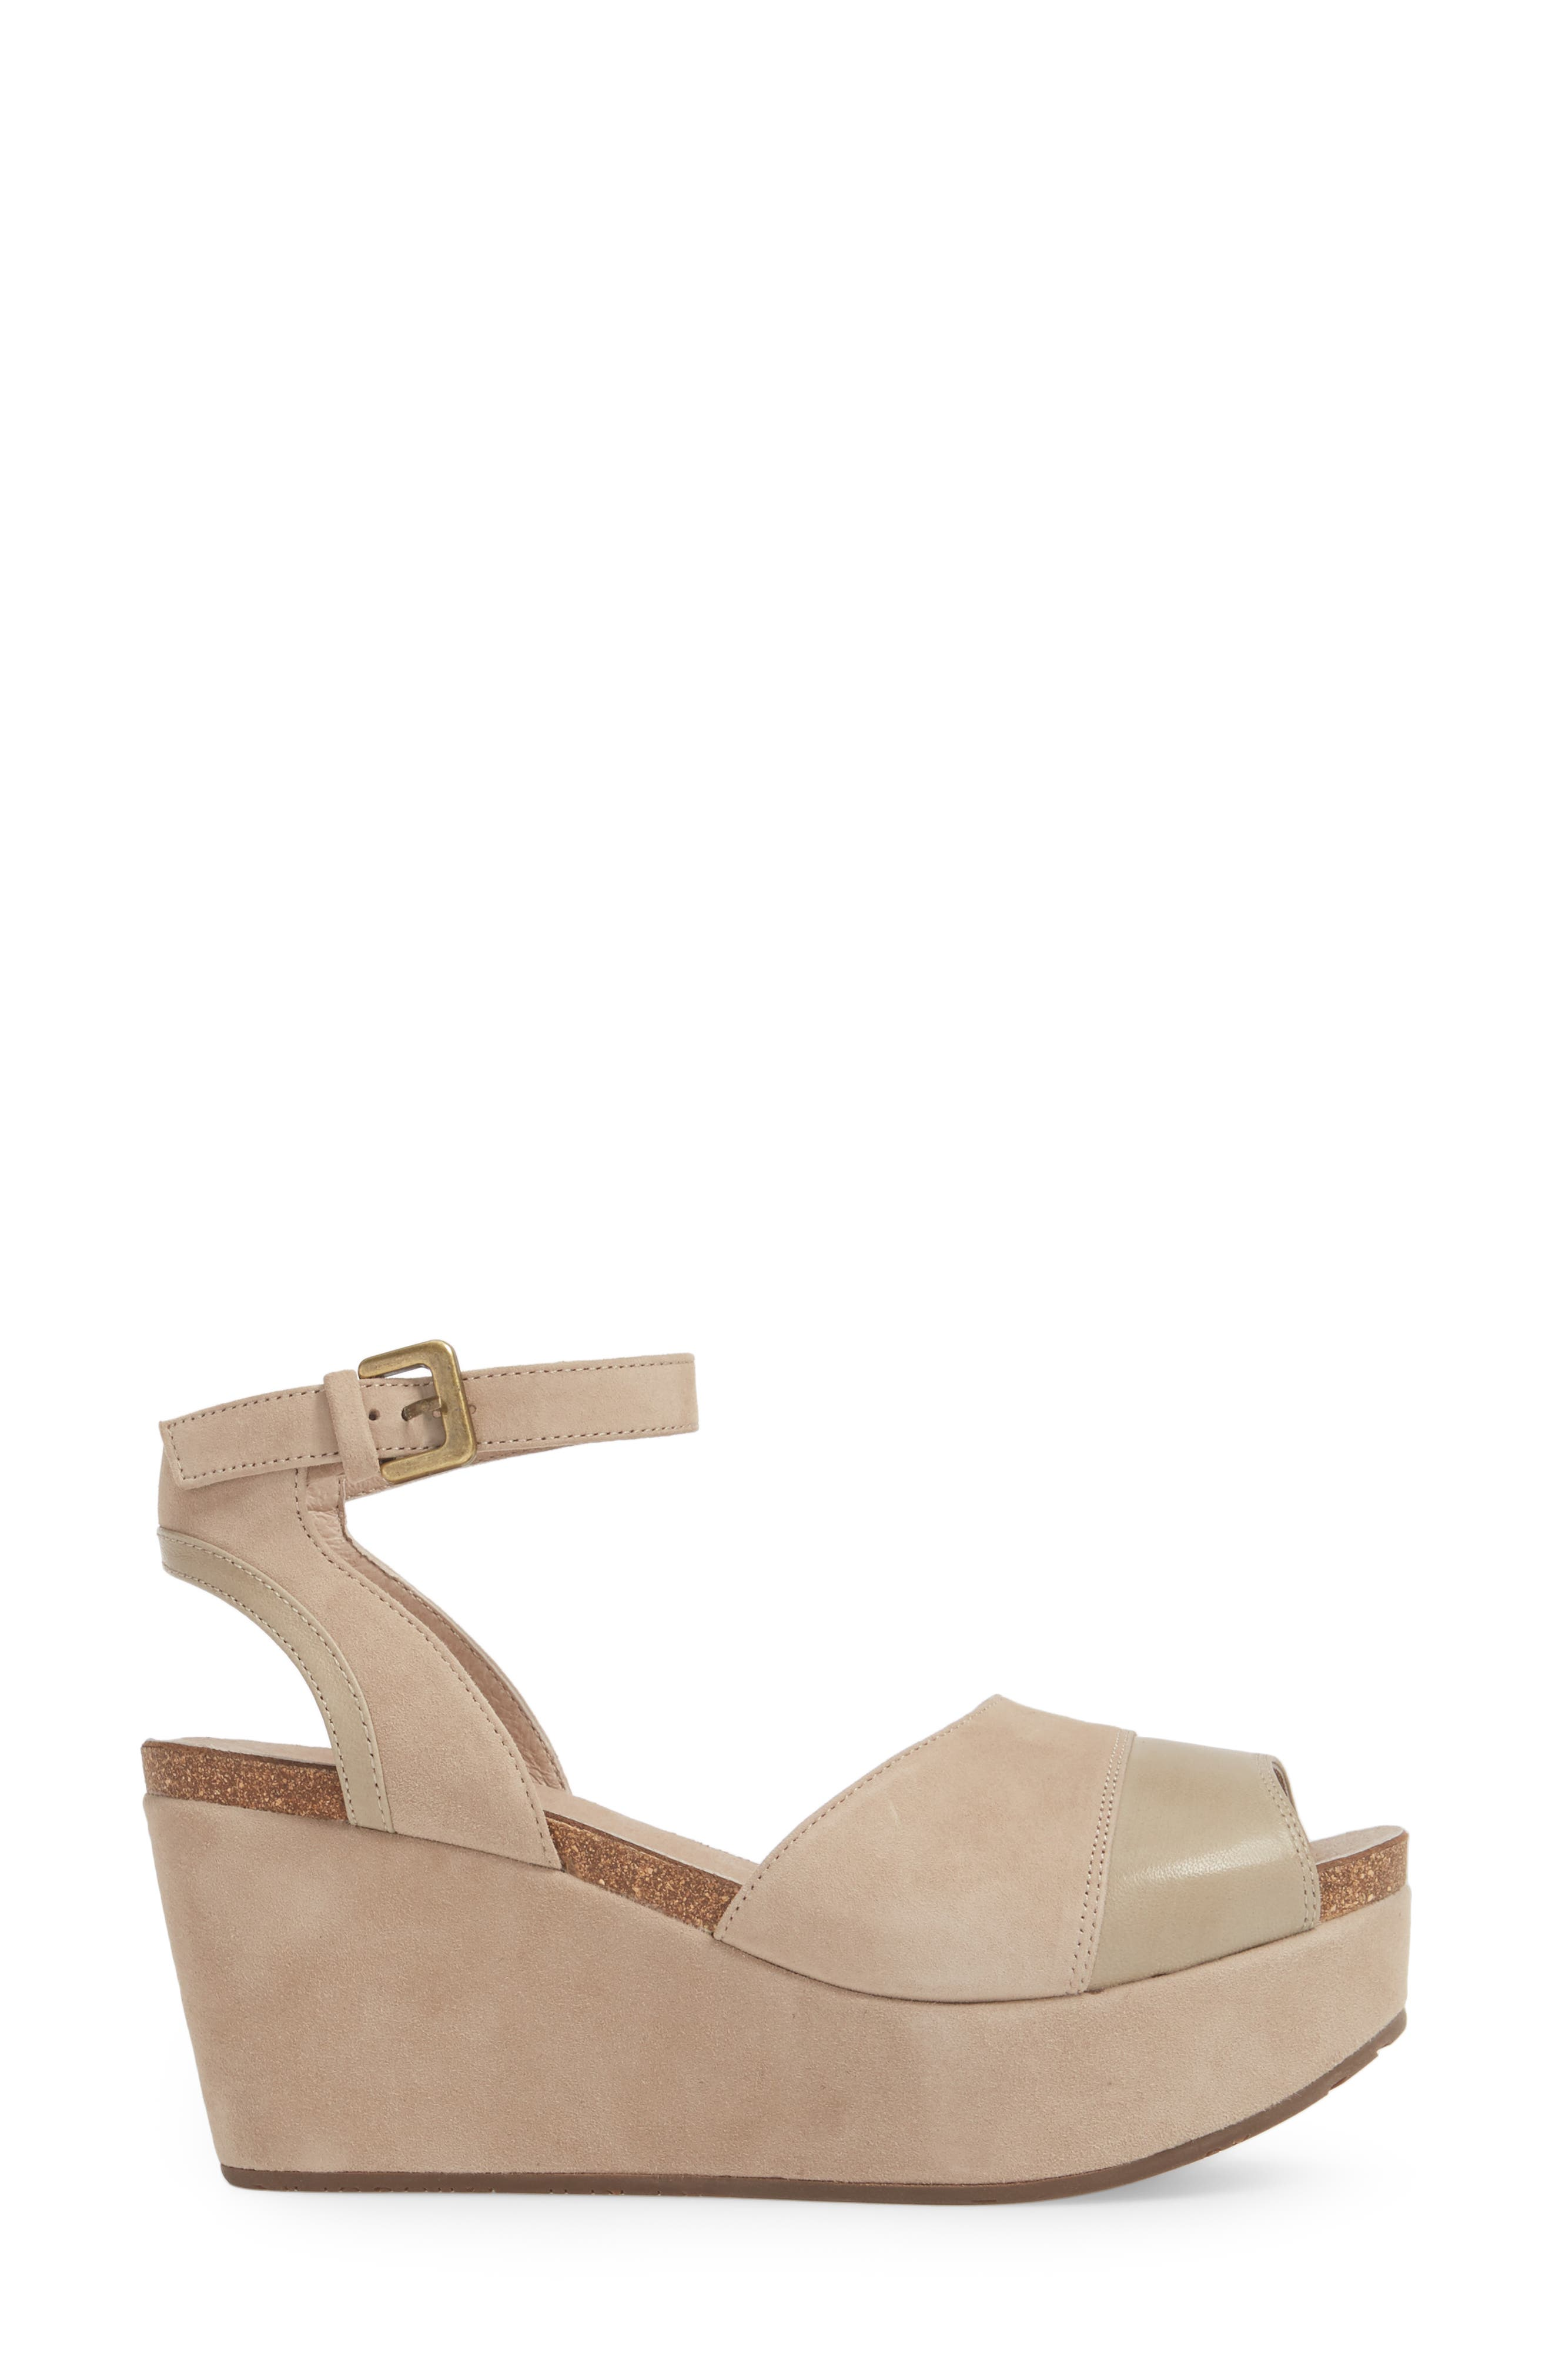 Chocolate Blu Welby Ankle Strap Wedge Sandal,                             Alternate thumbnail 3, color,                             Taupe Suede